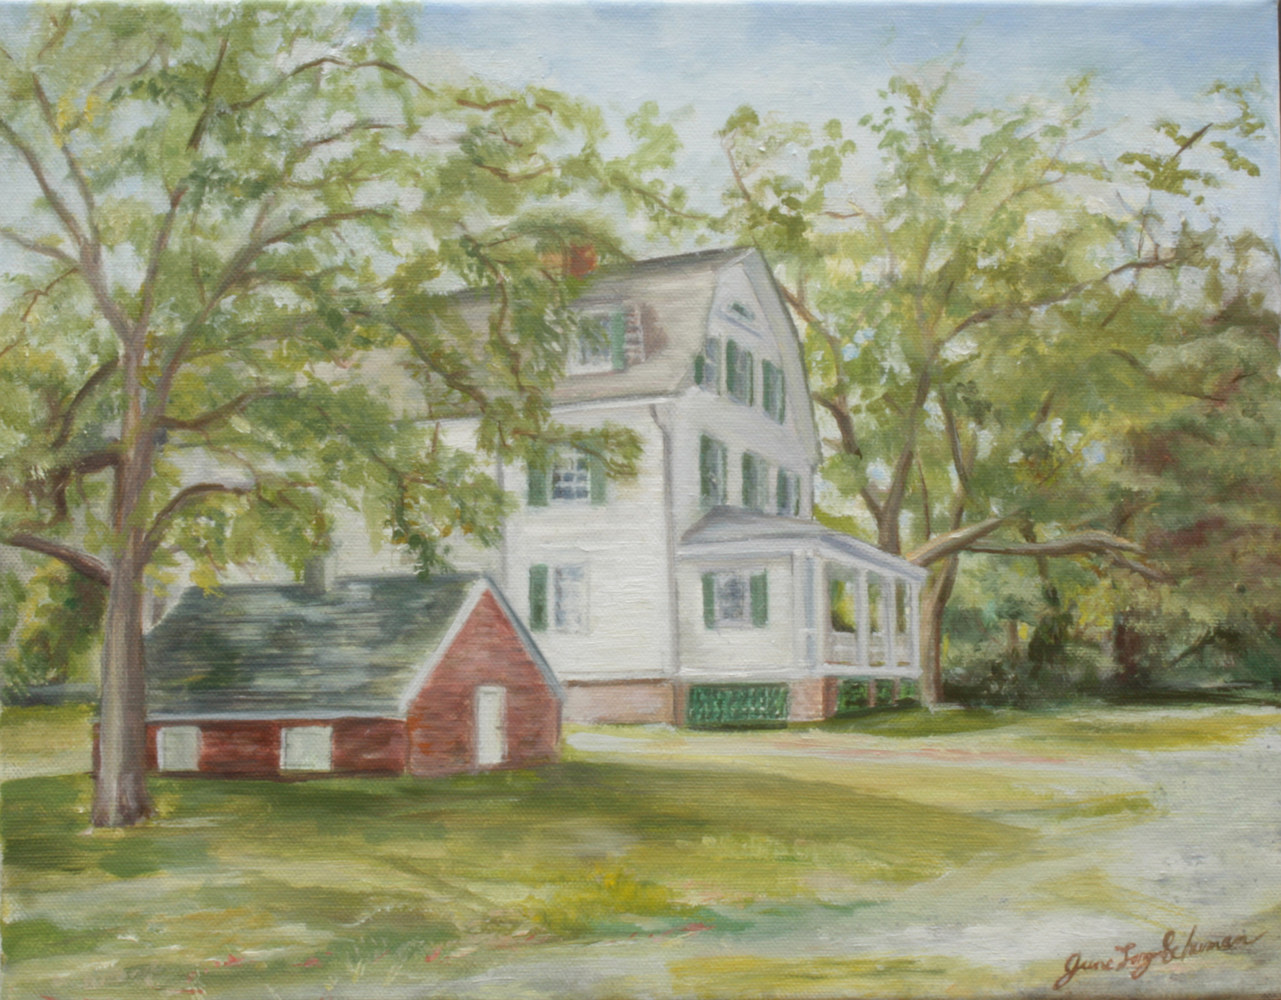 Oil painting Sagtikos manor painting by June Long-schuman